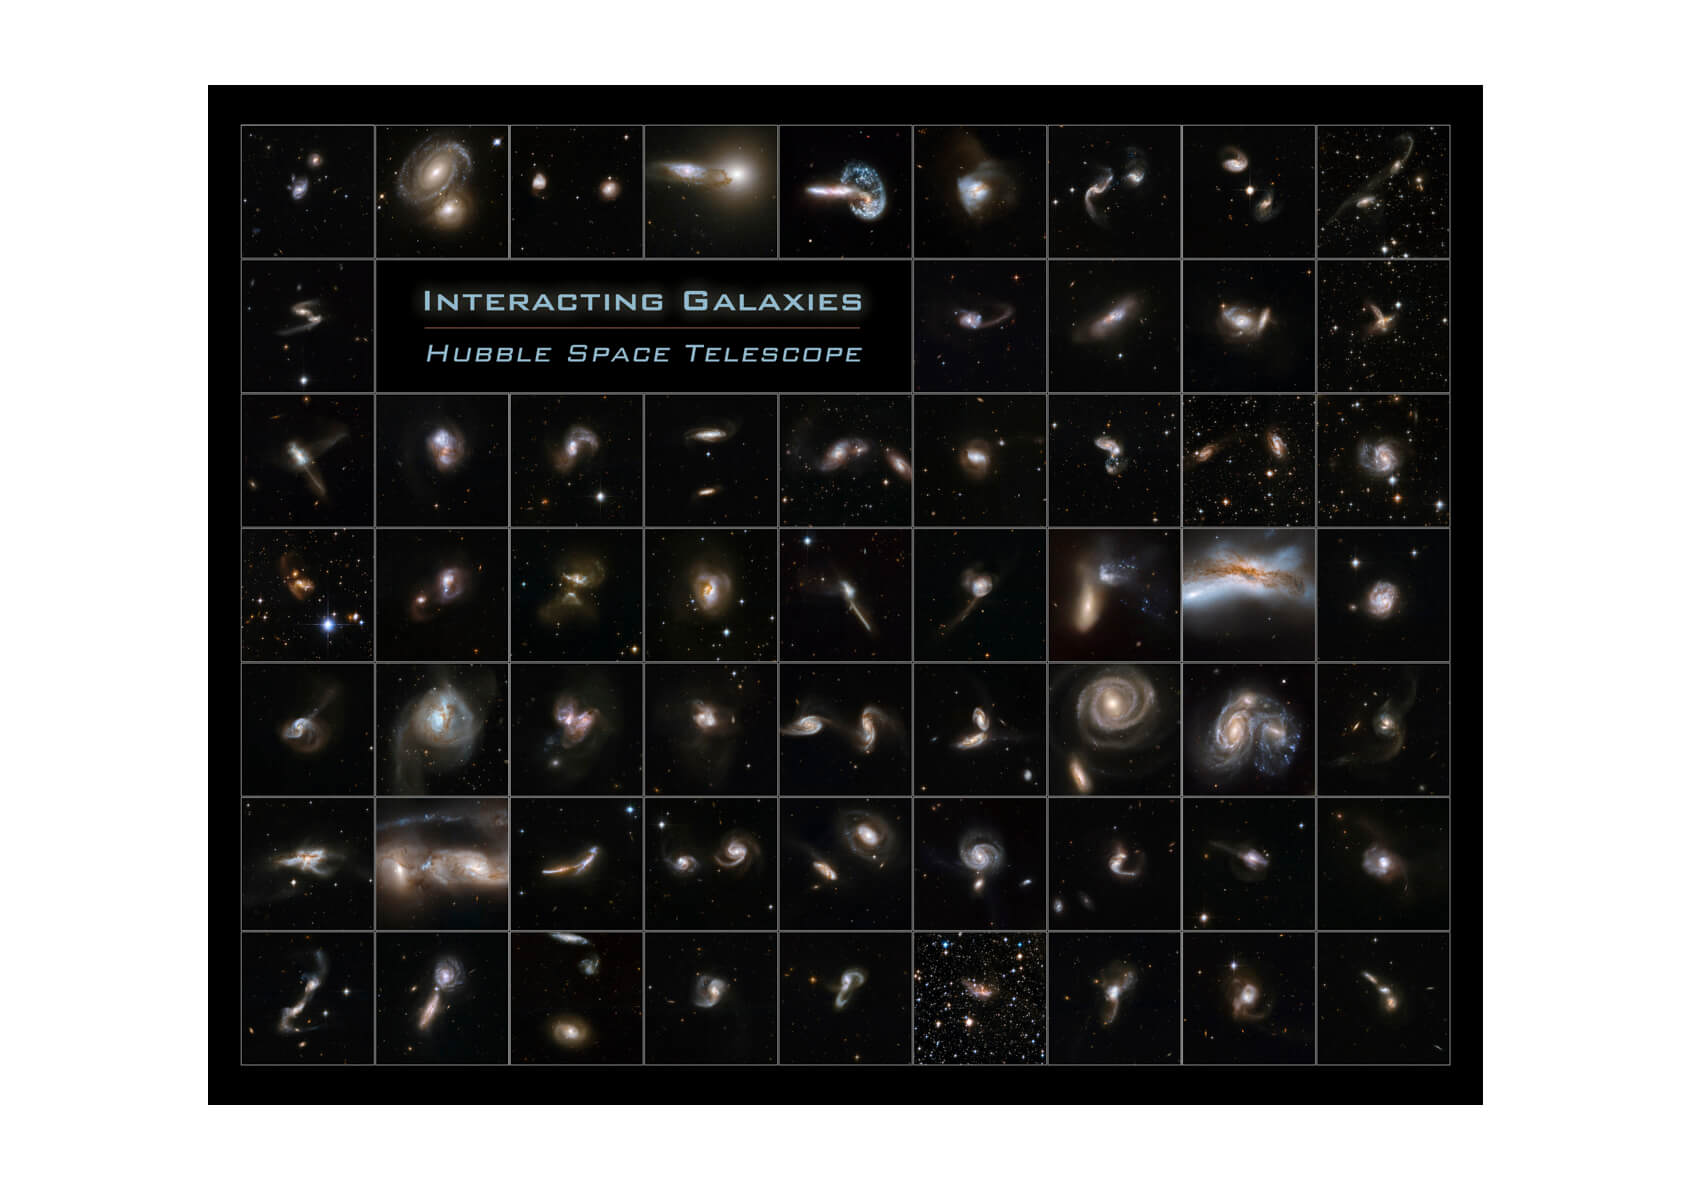 Hubble Telescope - Interacting Galaxies Poster